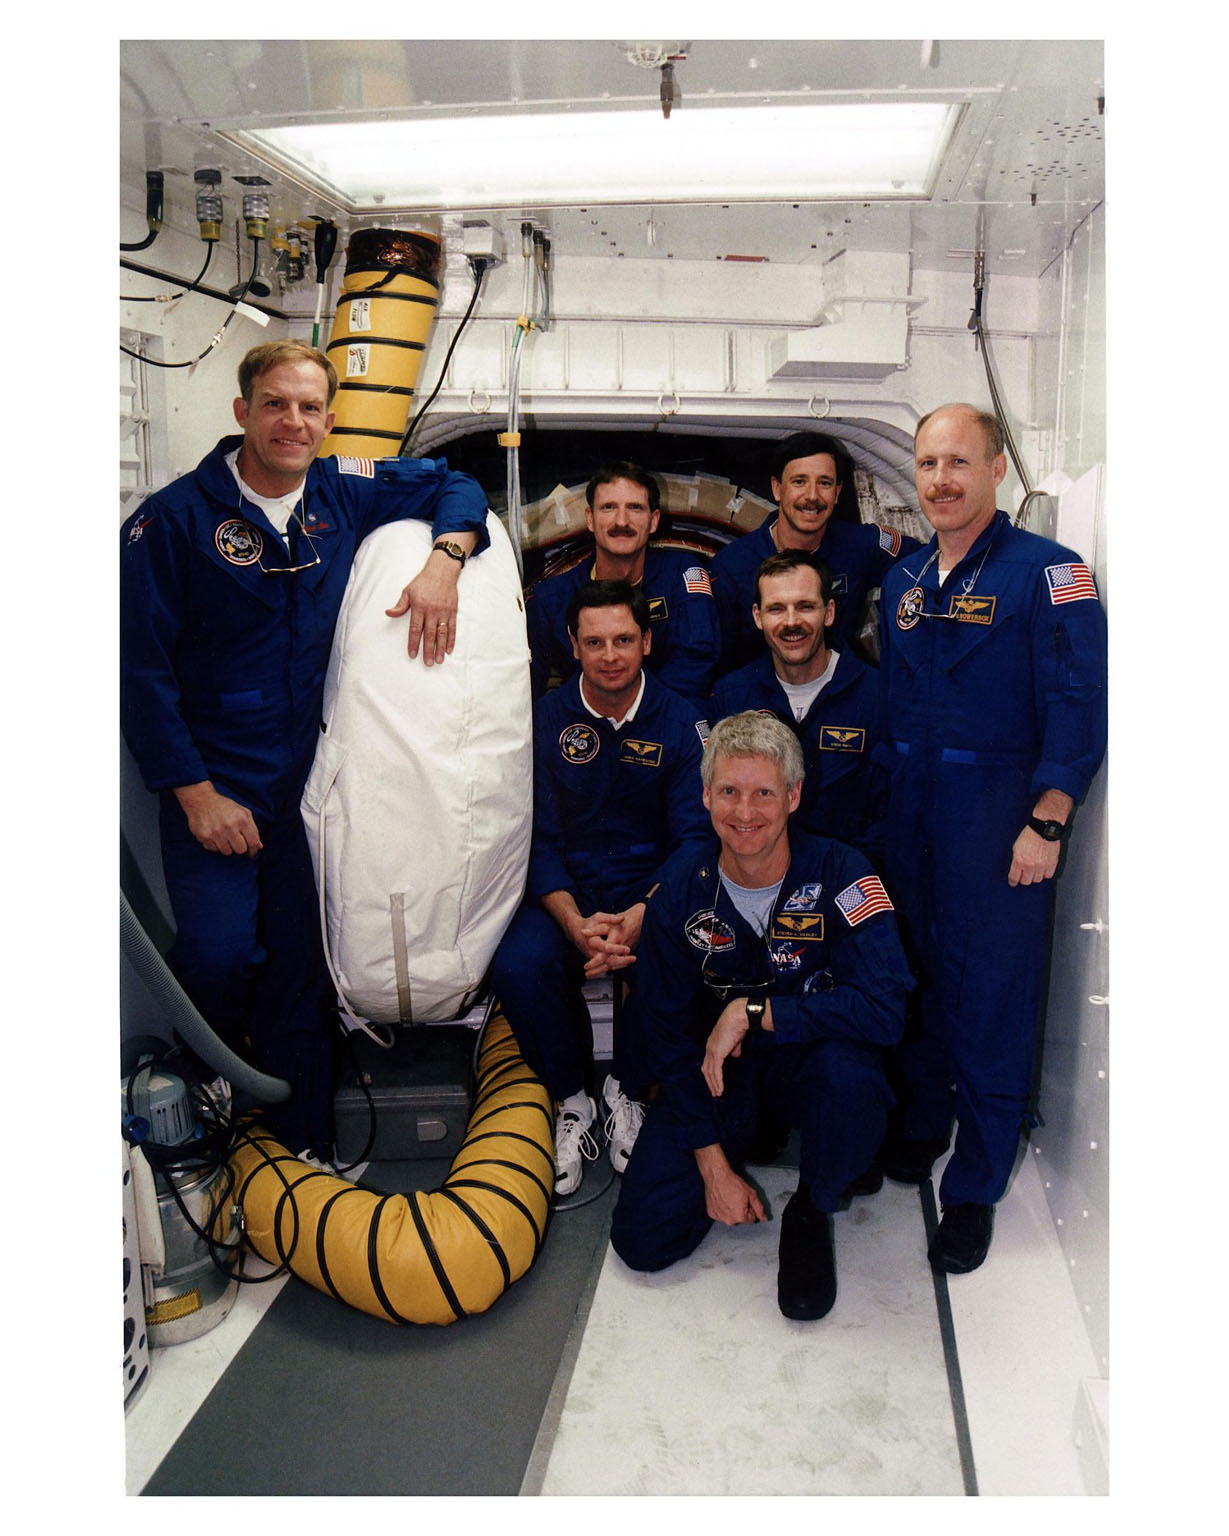 """KENNEDY SPACE CENTER, Fla. -- At Launch Pad 39A, STS-82 crew members pose for a group photo outside the entrance to the Space Shuttle Discovery?s crew cabin. Kneeling in front is Mission Specialist Steven A. Hawley. Payload Commander Mark C. Lee is at far left. In second row behind Hawley, from left, are Mission Specialists Gregory J. Harbaugh and Steven L. Smith, and Mission Commander Kenneth D. Bowersox. In back, from left, are Mission Specialists Joseph R. """"Joe"""" Tanner and Pilot Scott J. """"Doc"""" Horowitz. The crew are at KSC to participate in the Terminal Countdown Demonstration Test (TCDT), a dress rehearsal for launch. The seven-member crew will conduct the second Hubble Space Telescope servicing mission. Liftoff of the 10-day flight is scheduled Feb. 11"""